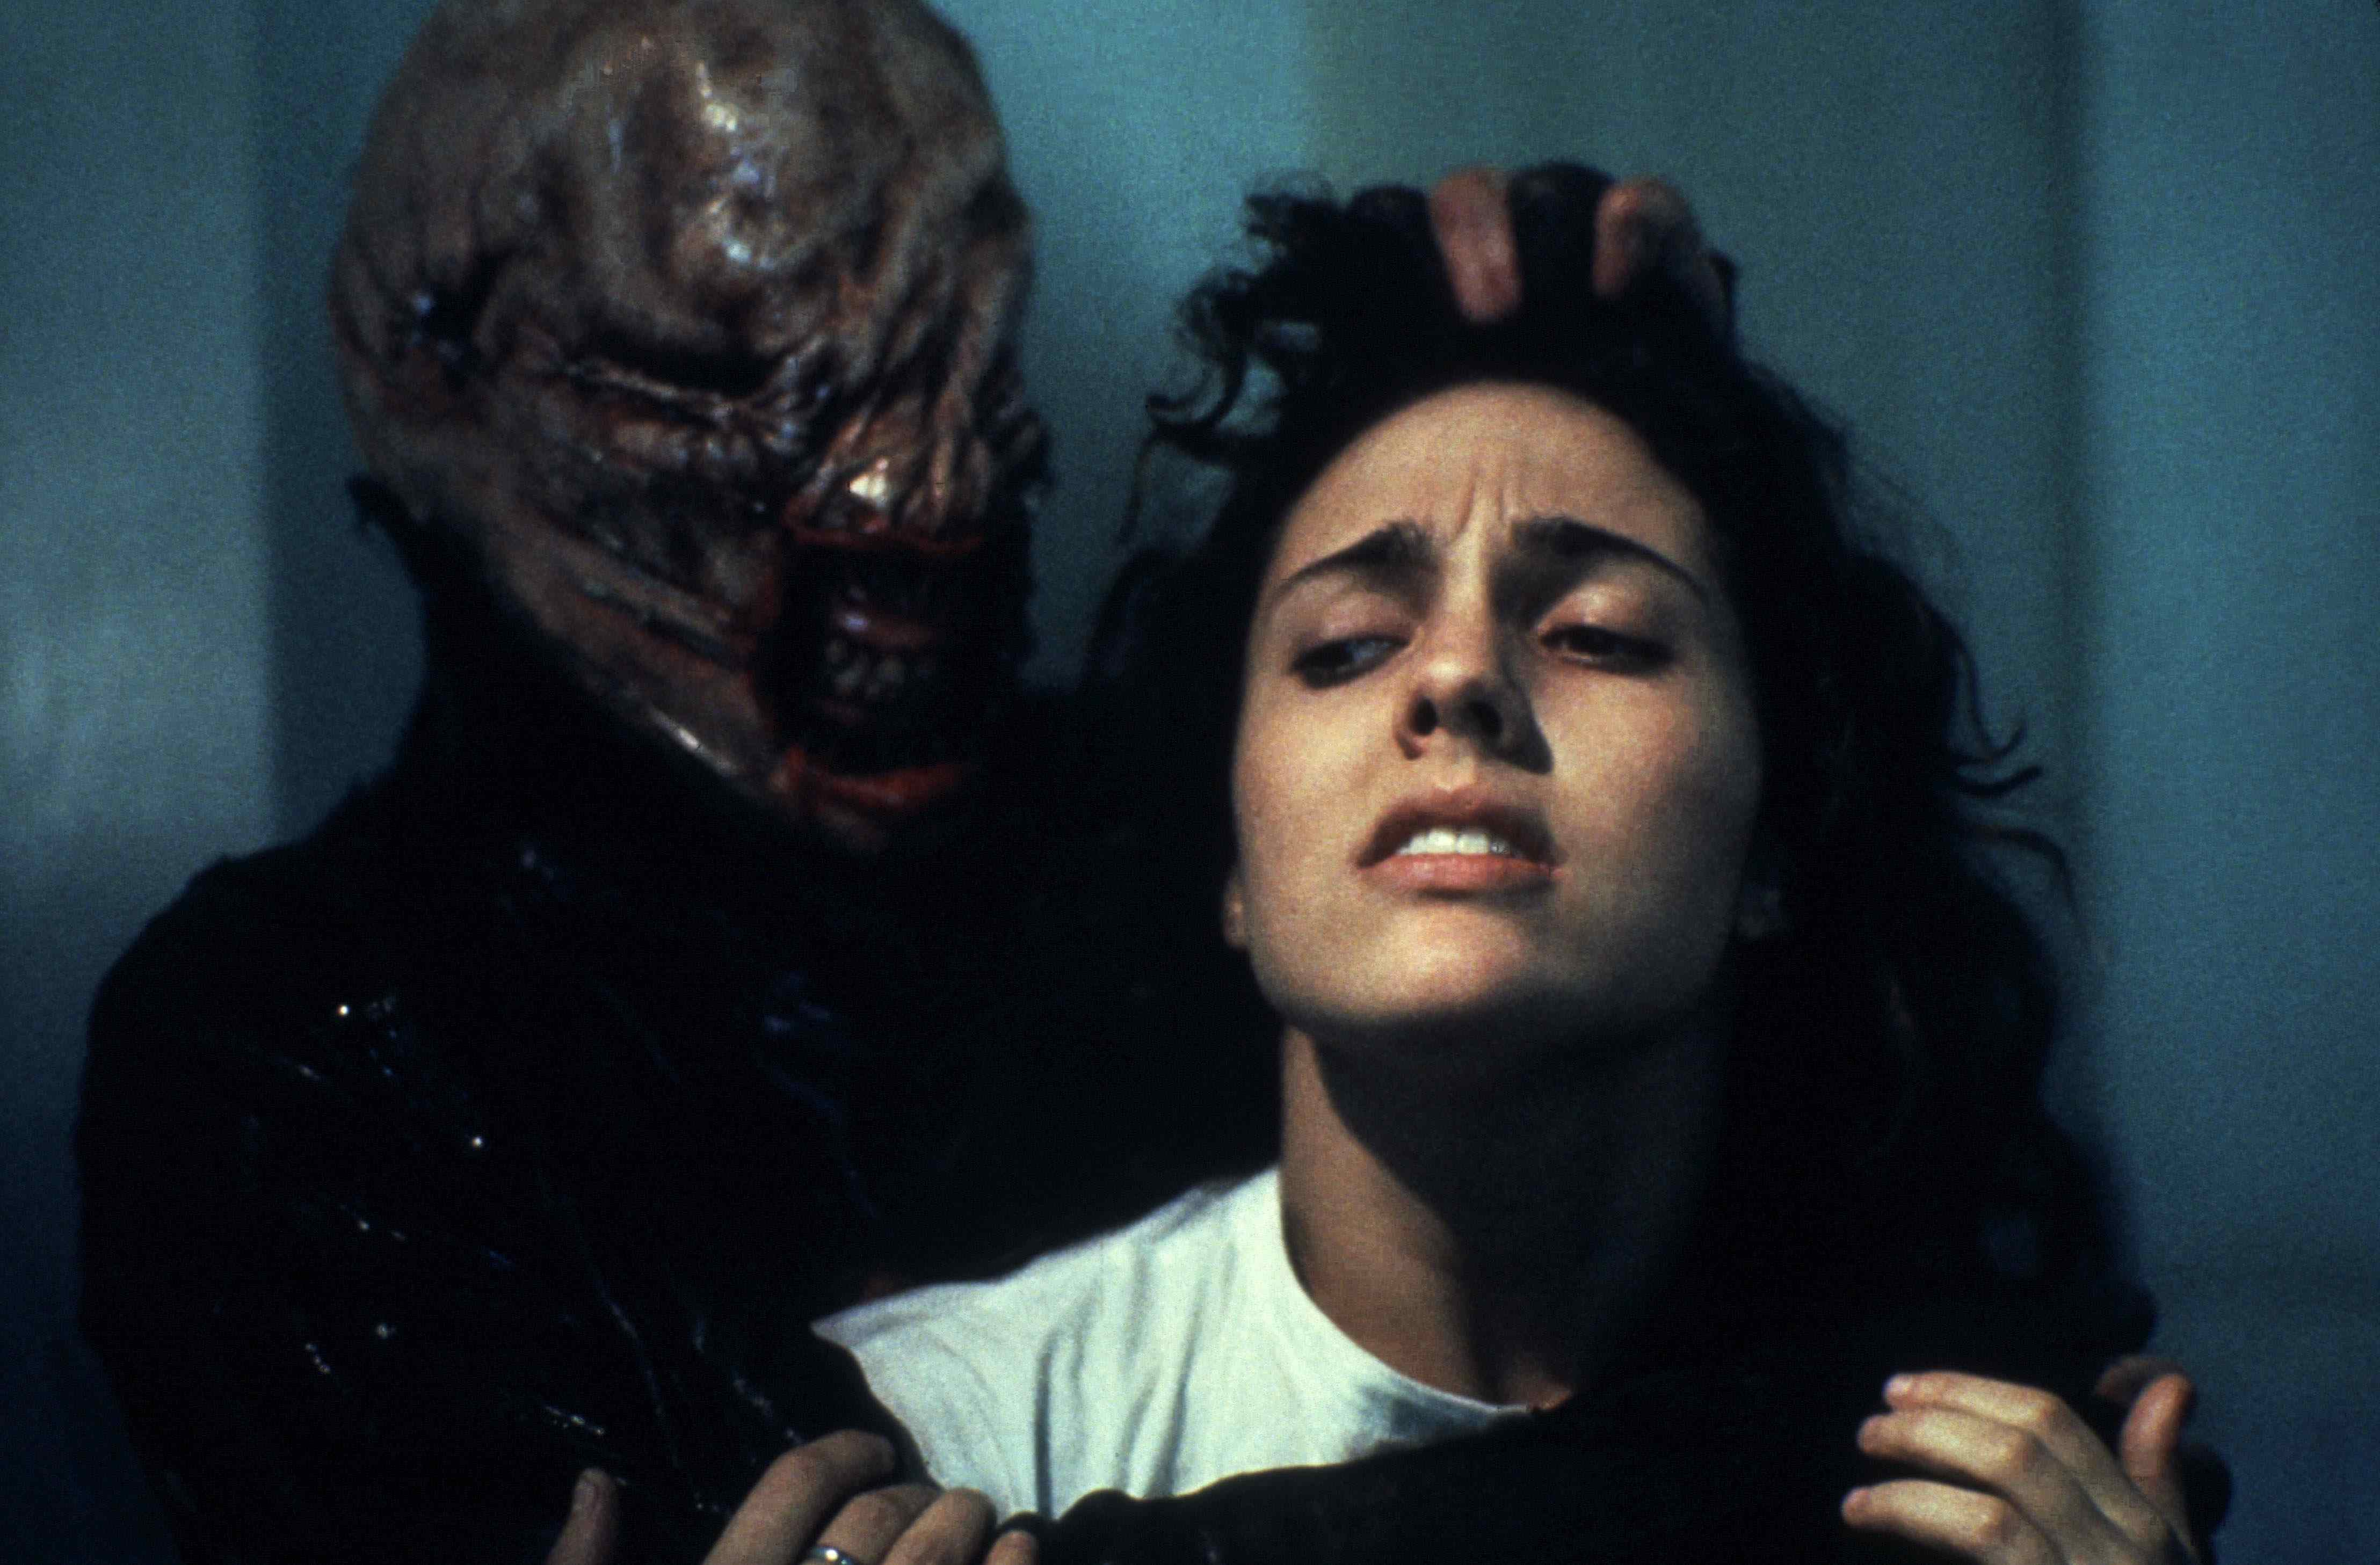 The Chatterer and Kirsty in Hellraiser